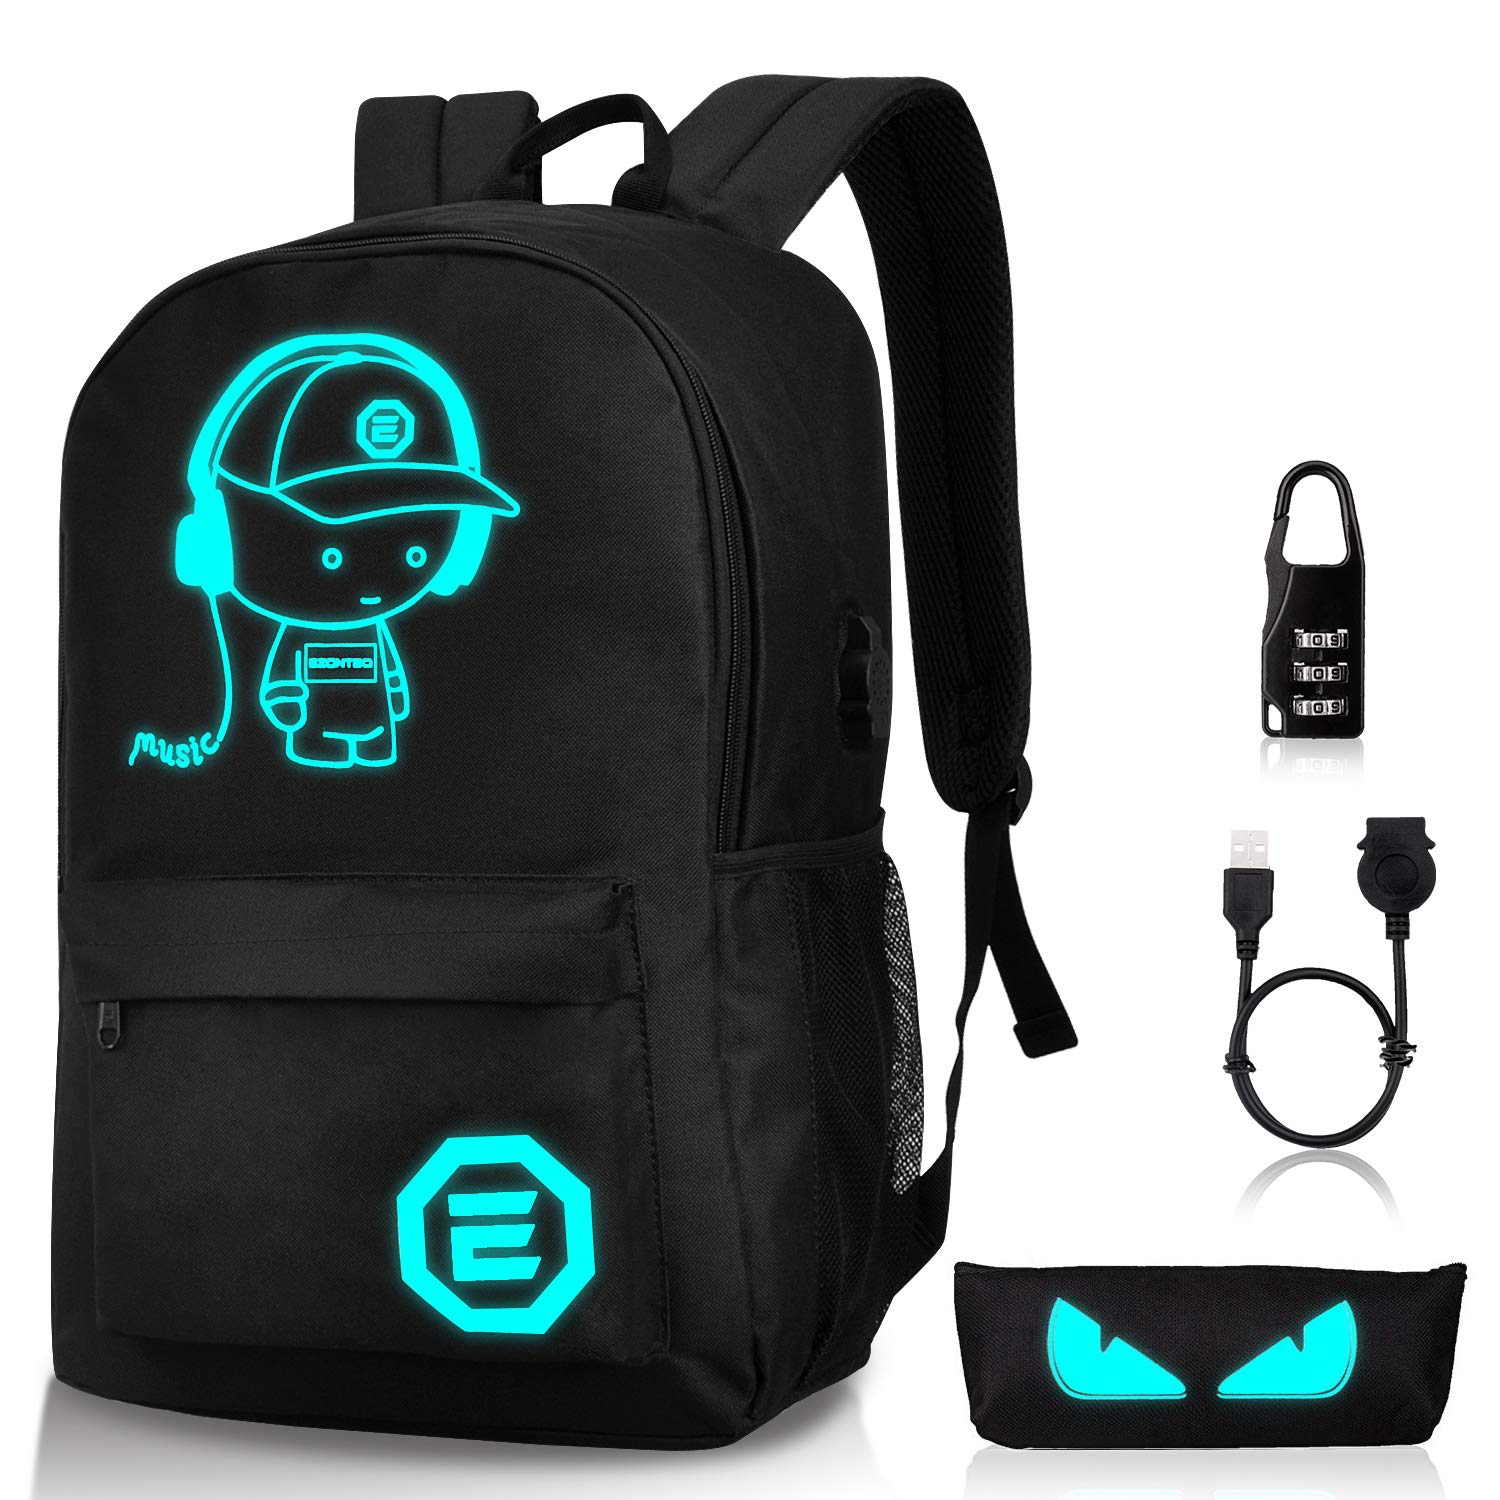 Luminous School Backpack,Ezonteq Anime Cartoon Music Boy Shoulder Laptop Travel Bag Daypack College Bookbag Night Light for Students with USB Charging Port,Lock and Pencil Case 35L (No Power Source)